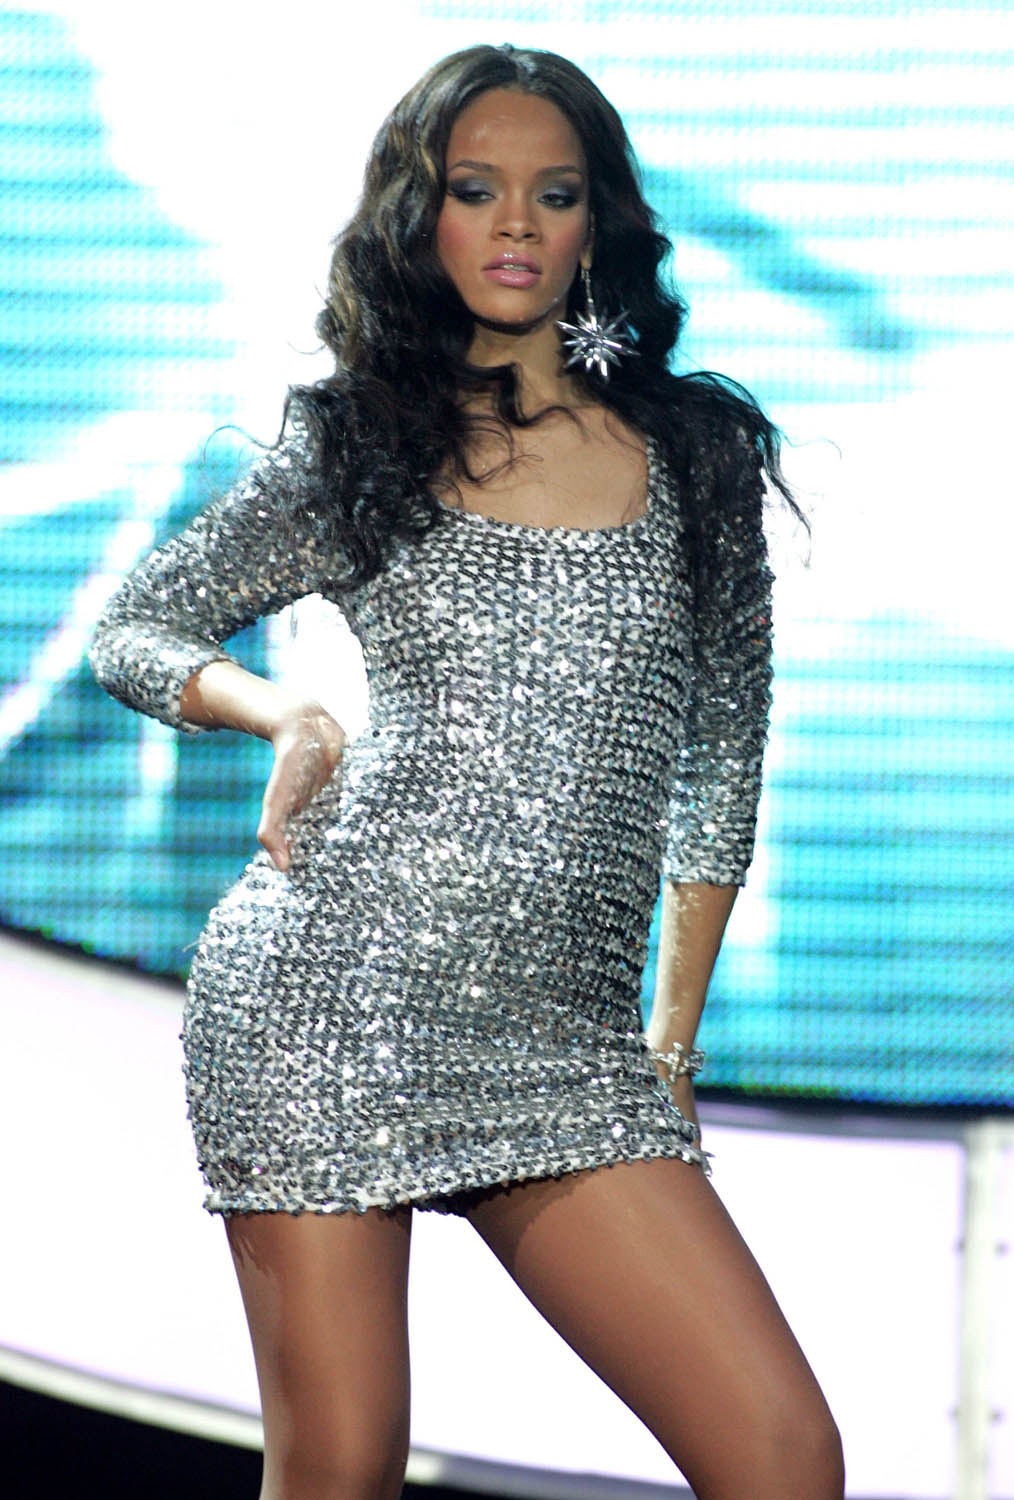 Singer Rihanna Wears Short Dress  SheClickcom